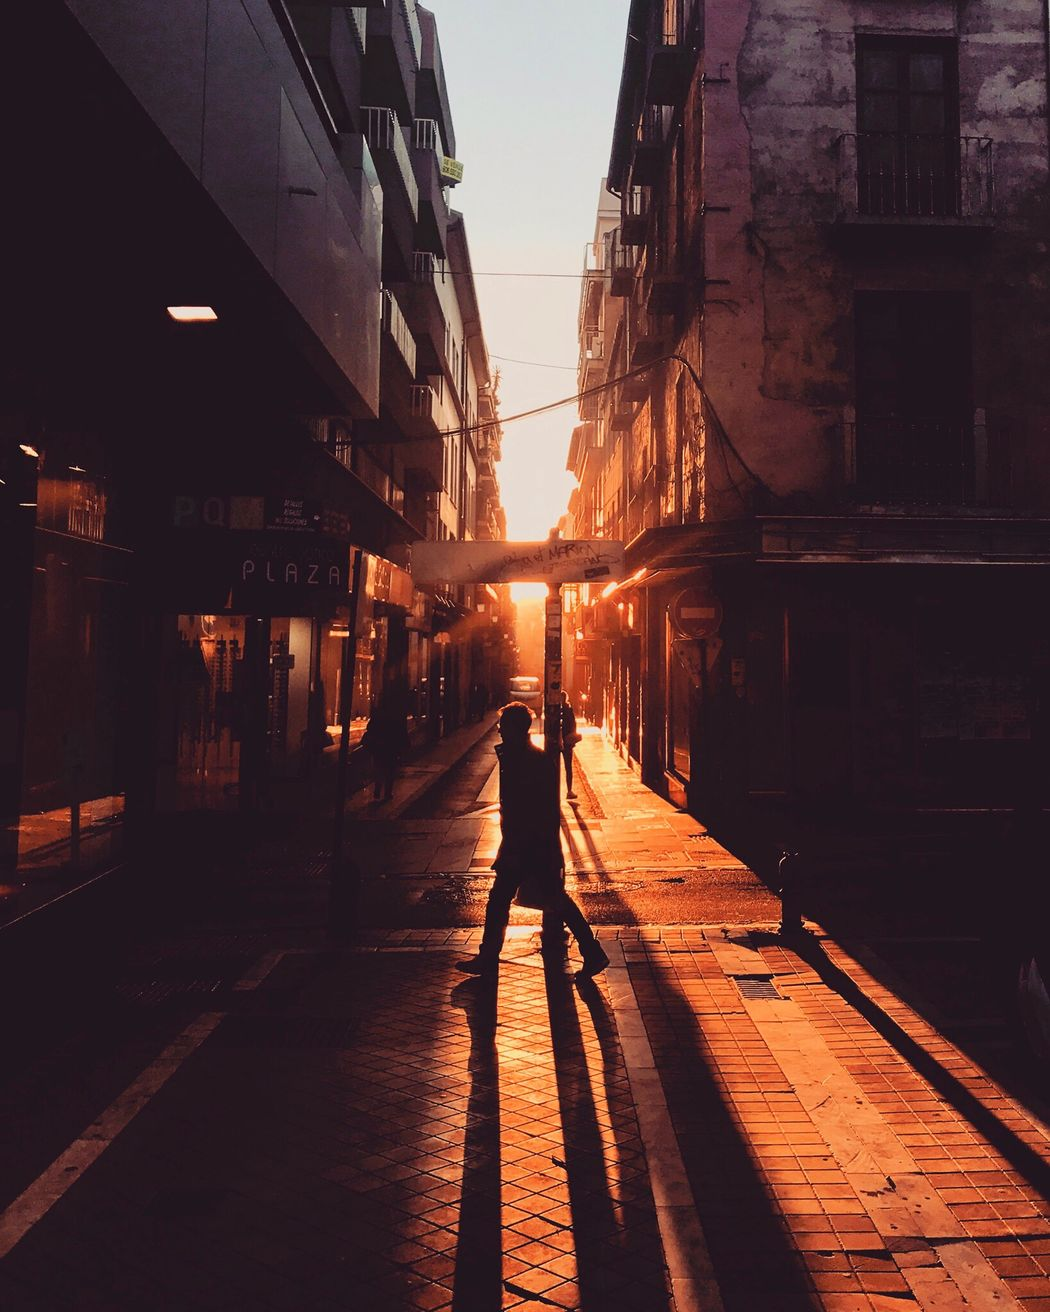 🌇 Walking Silhouette Sunset Outdoors City Men One Person People Photogrpahy Photooftheday Iphone7 Iphone7photo Goldenhourphotography Goldenhour Magichour First Eyeem Photo EyeEmNewHere